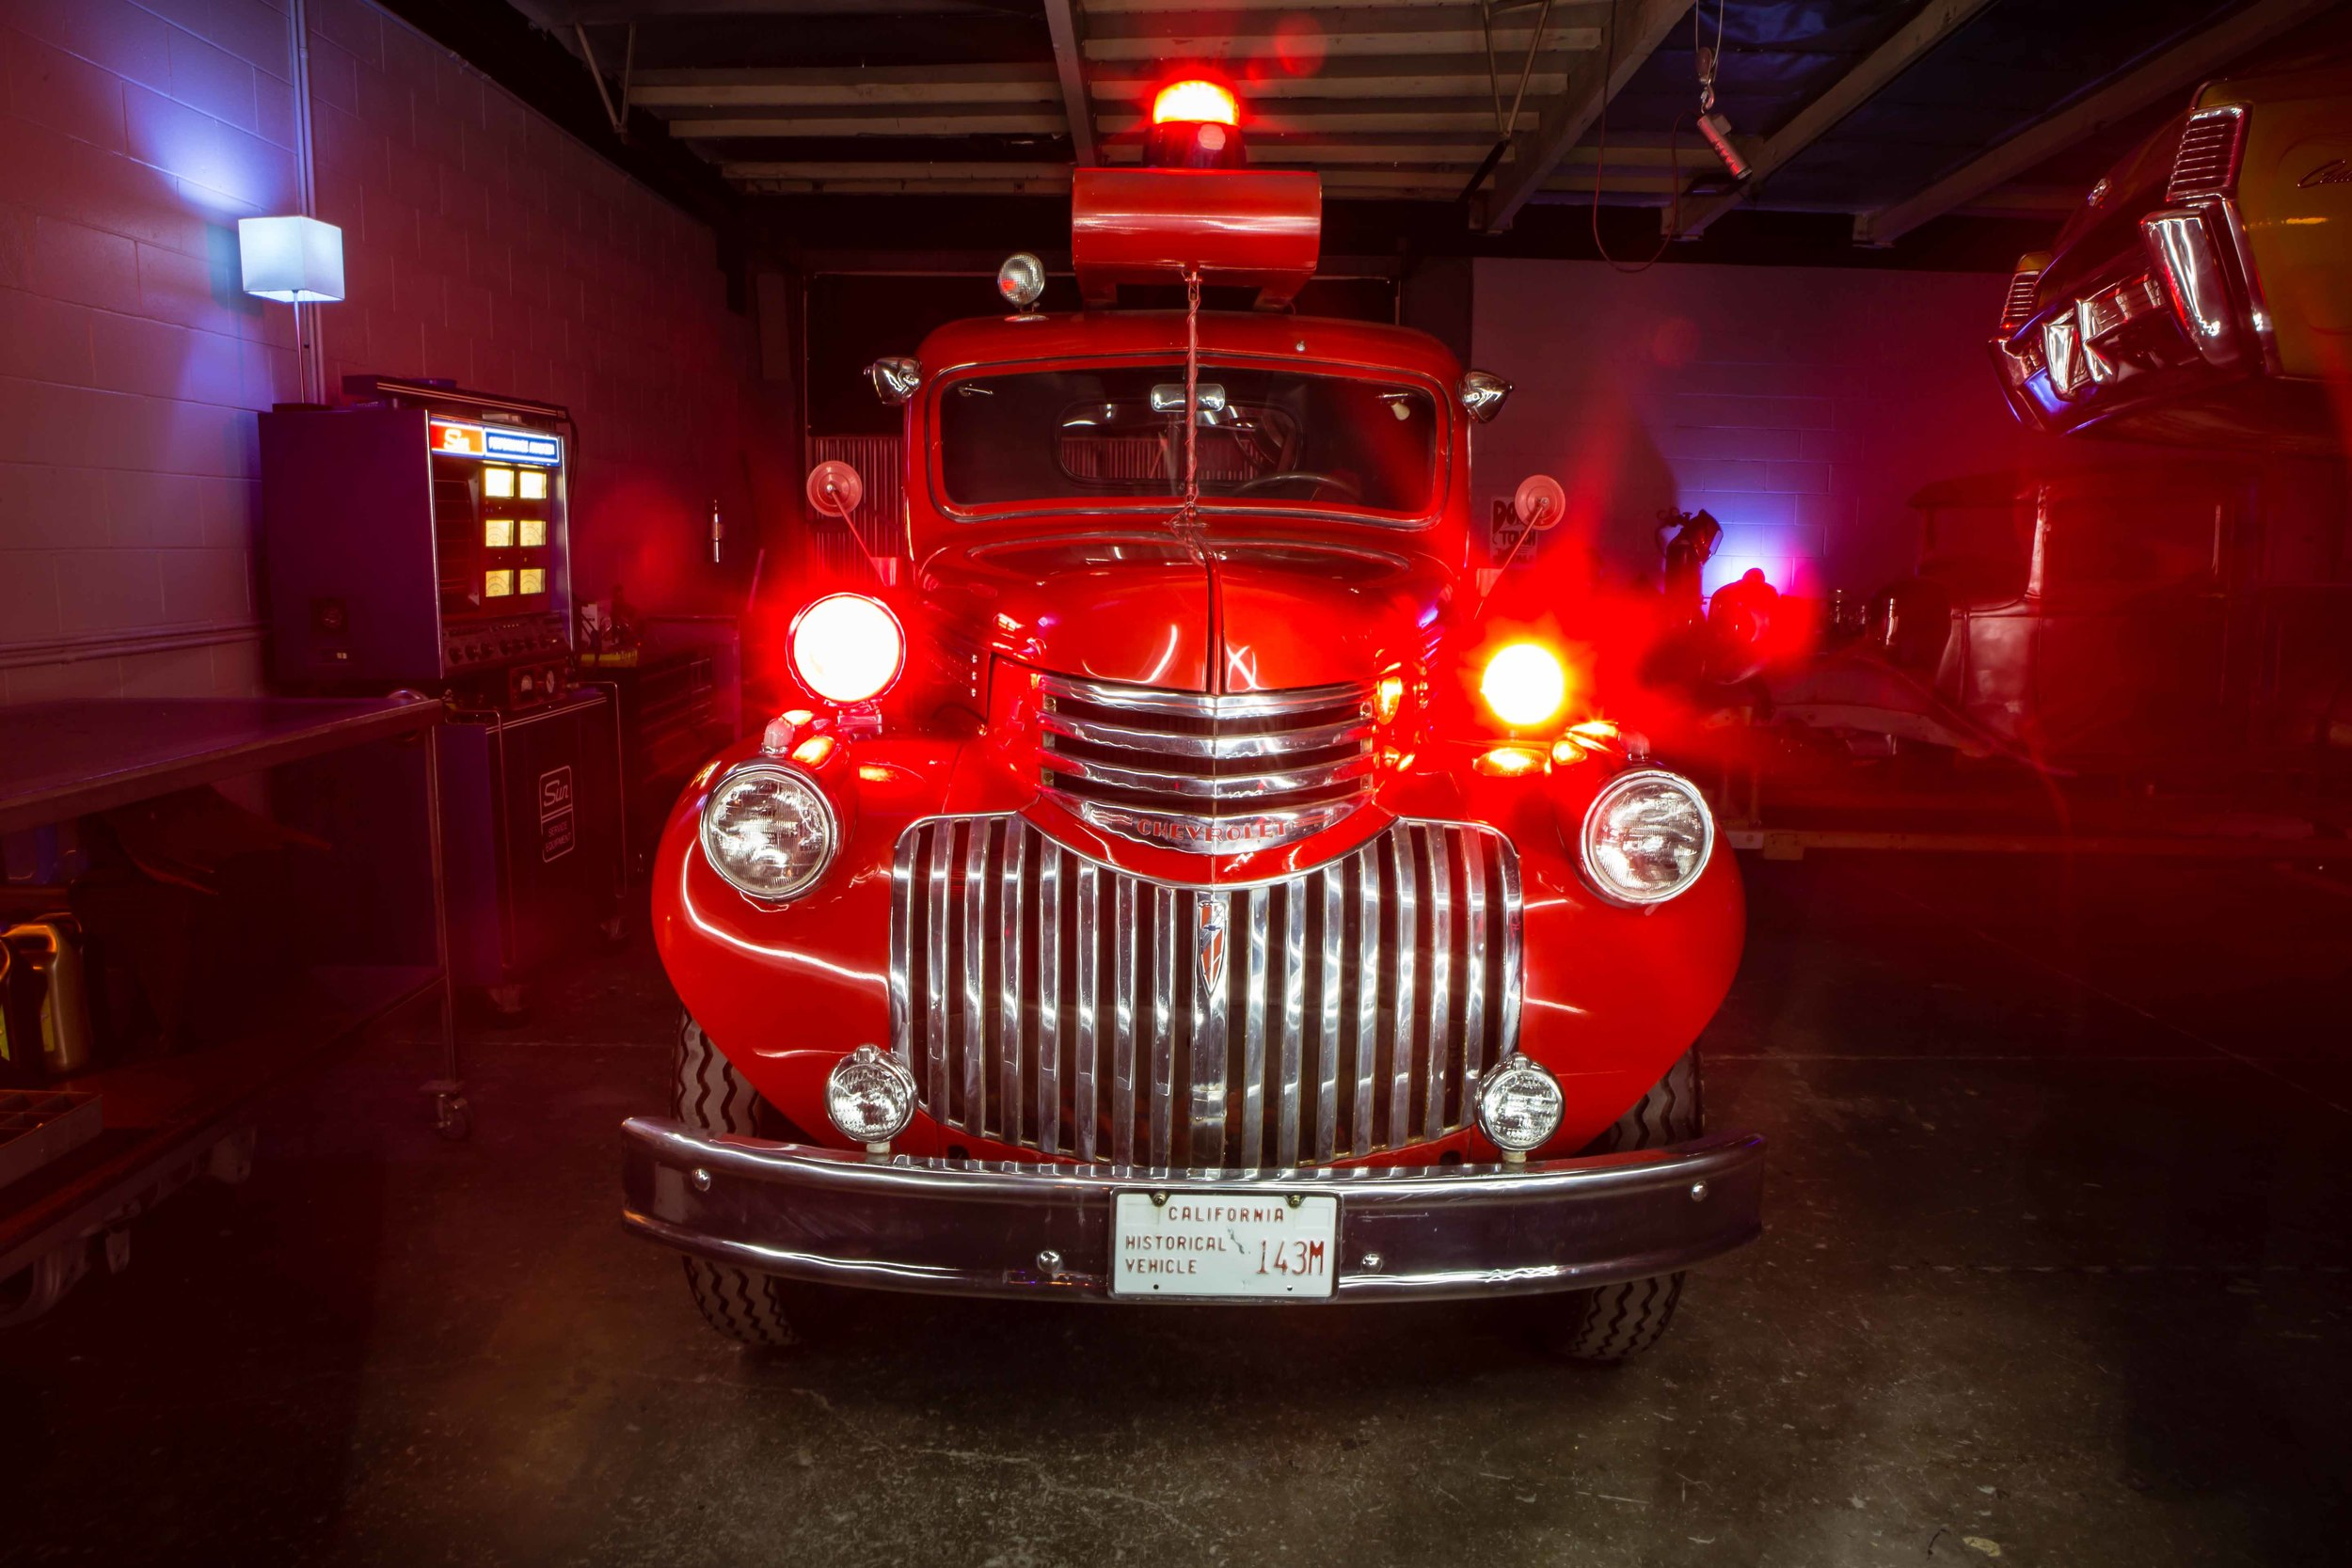 Anaheim Rod and Custom Fire Truck Project-26.jpg